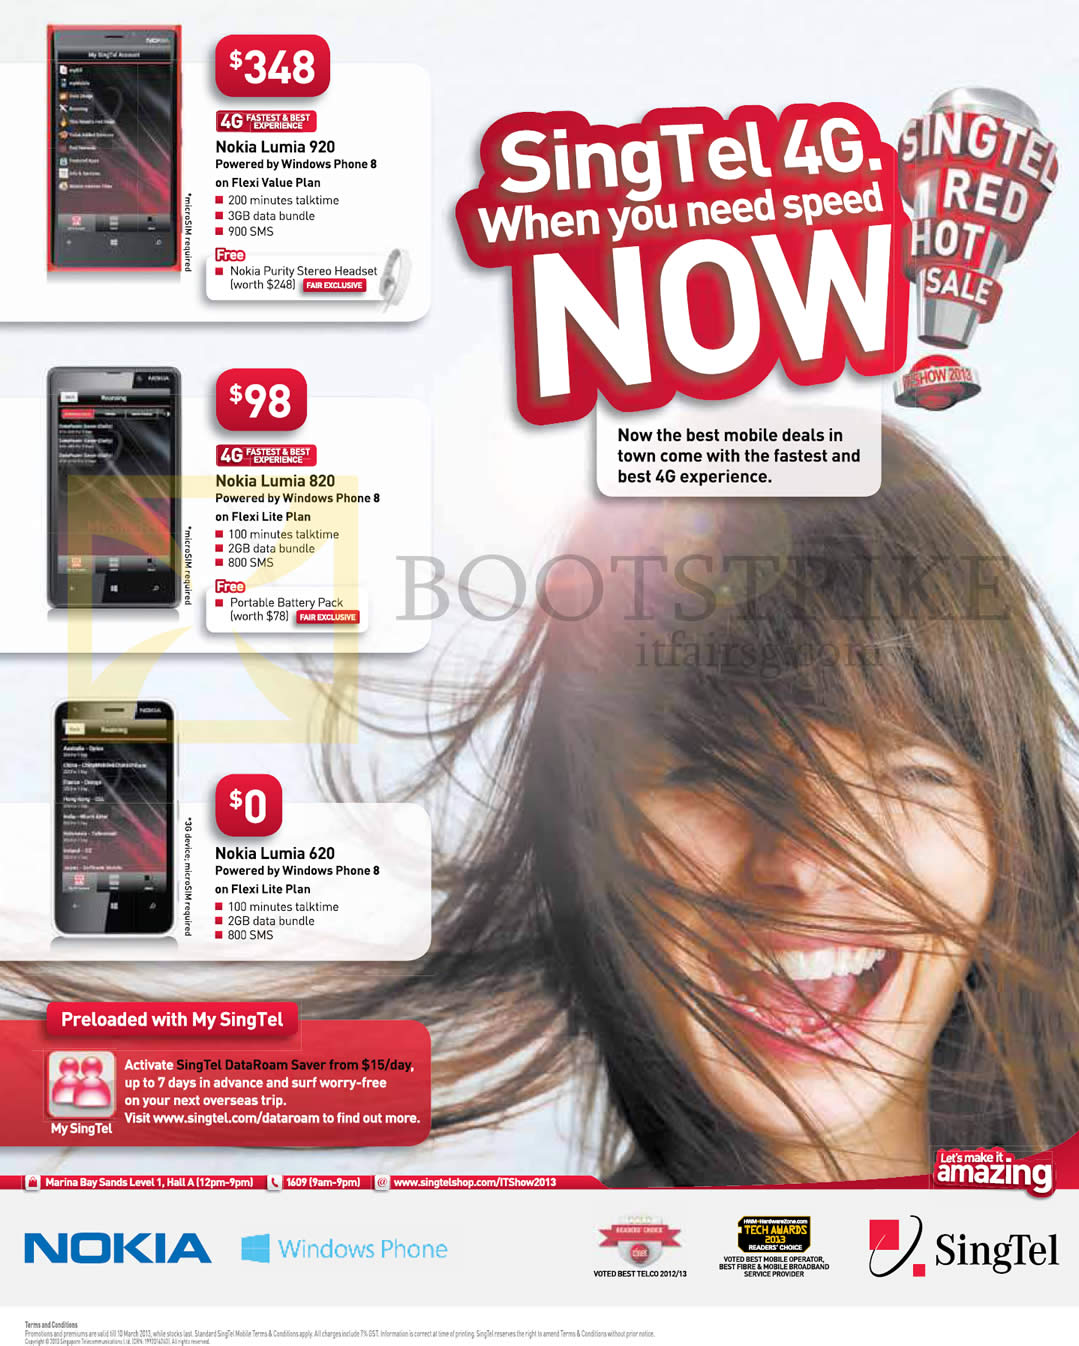 IT SHOW 2013 price list image brochure of Singtel Mobile Phones Nokia Lumia 920, Nokia Lumia 820, Nokia Lumia 620